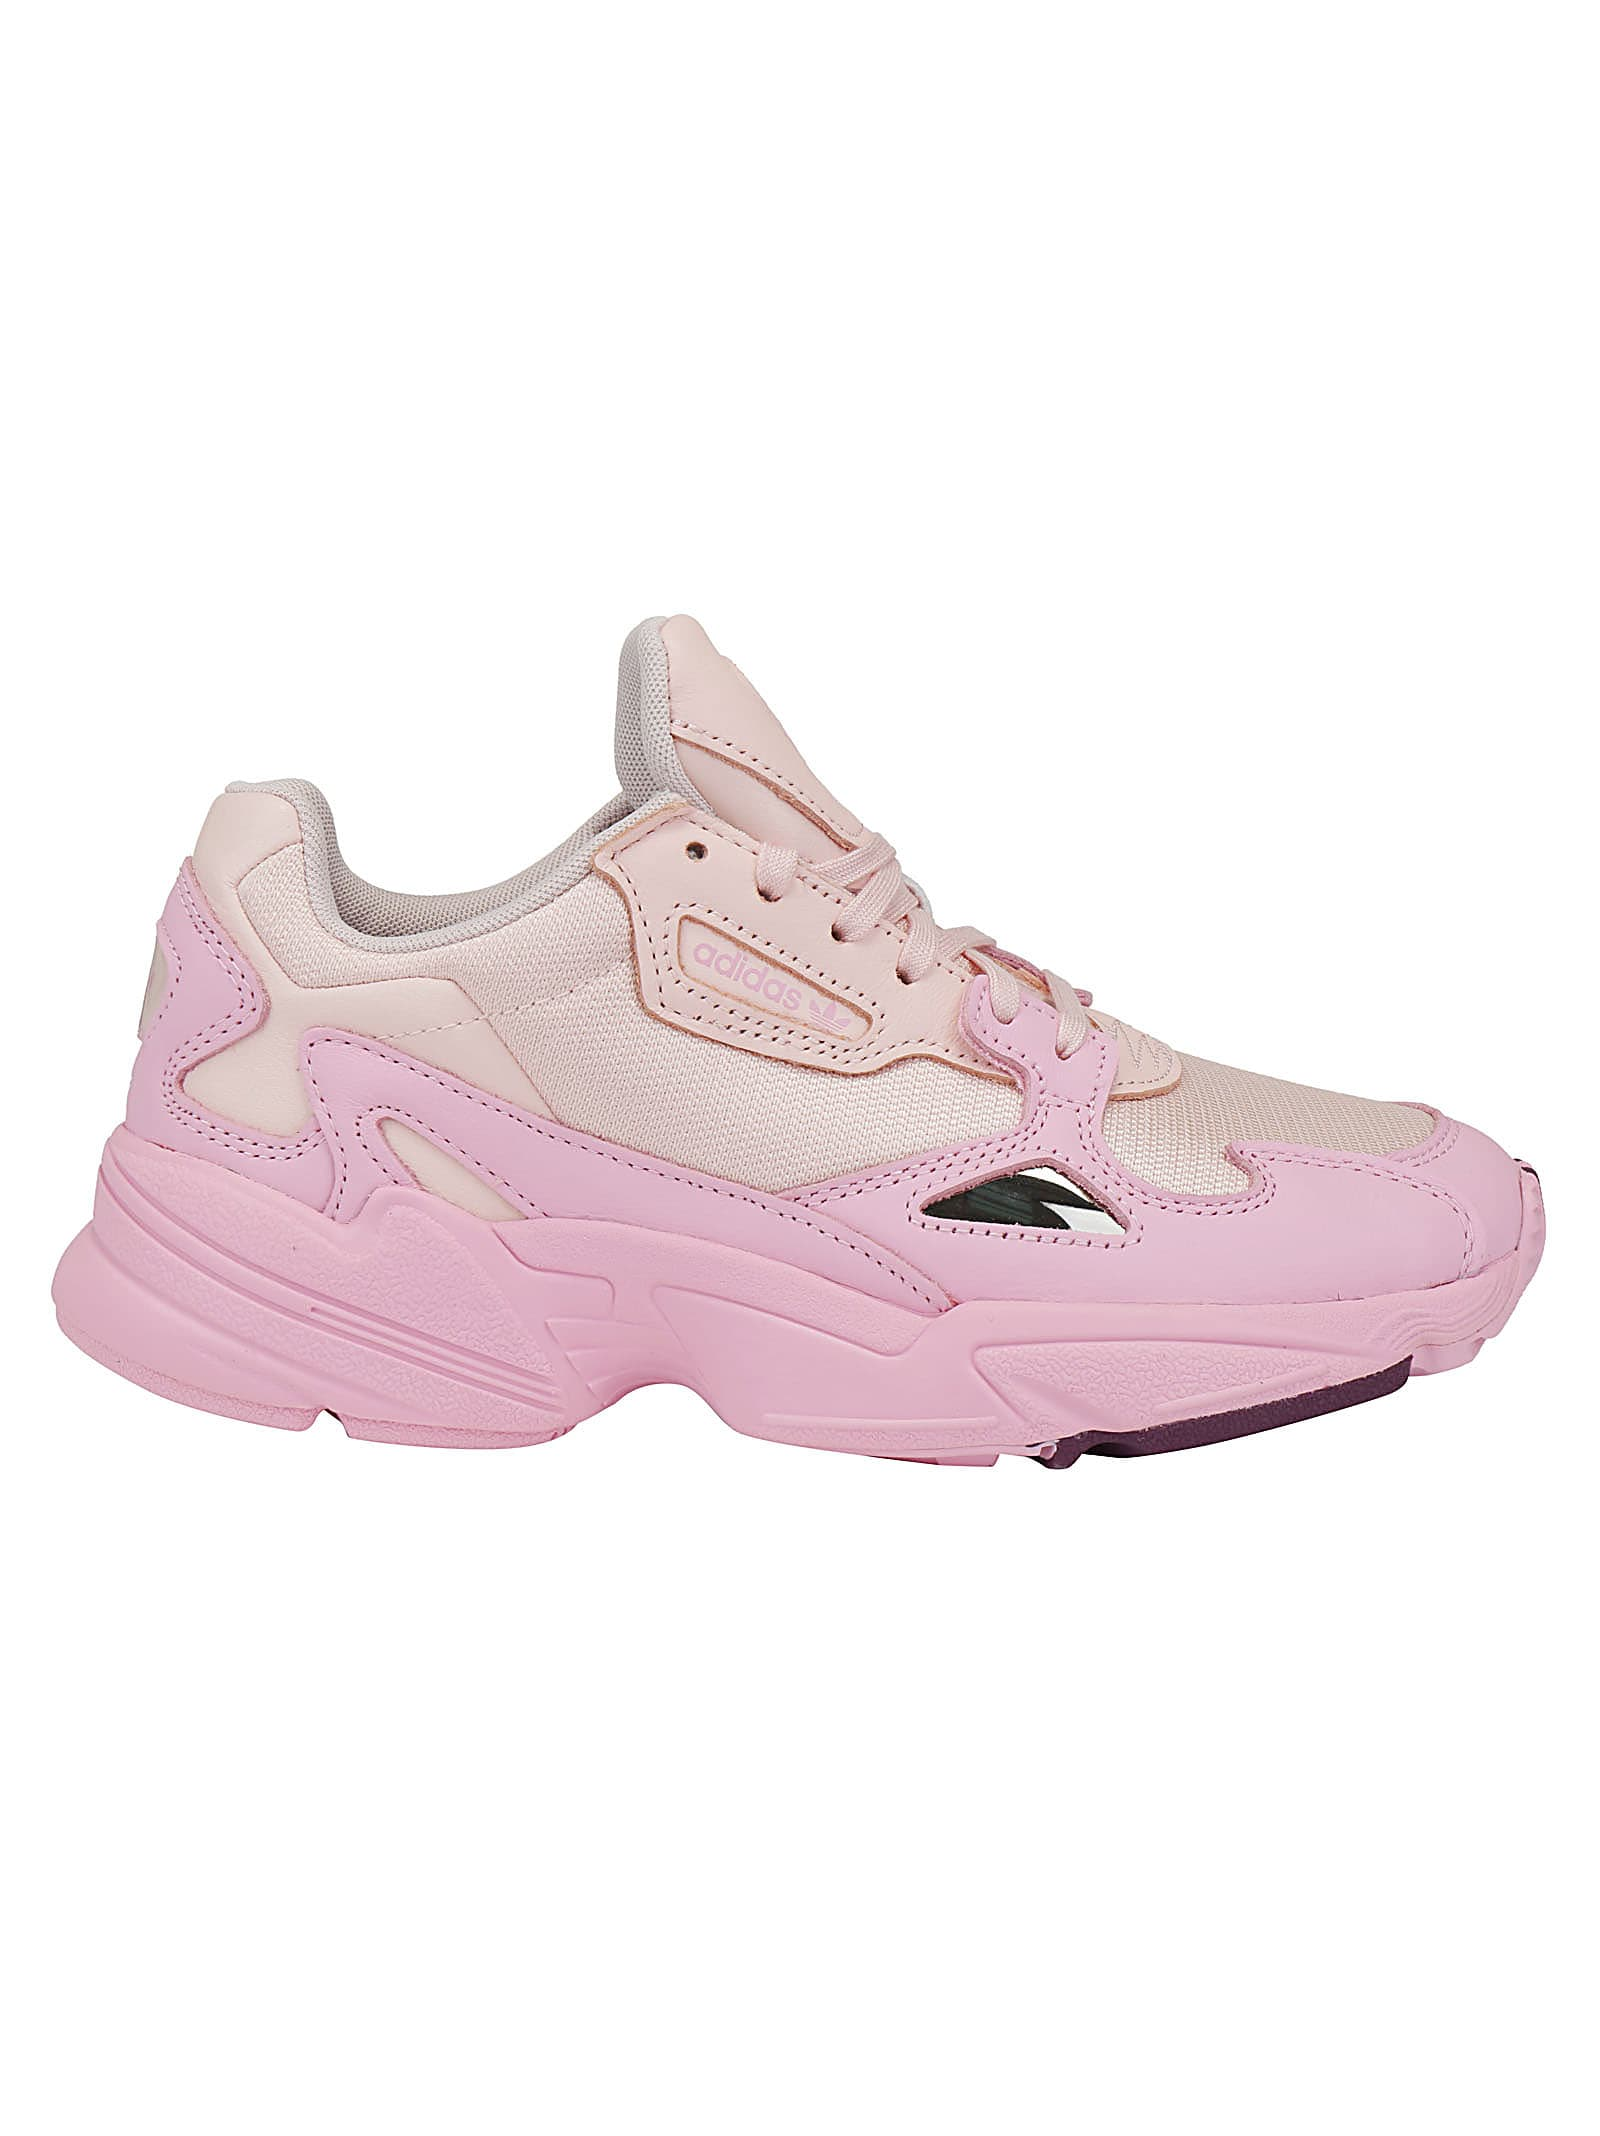 reasonable price price reduced later Adidas Falcon Sneakers